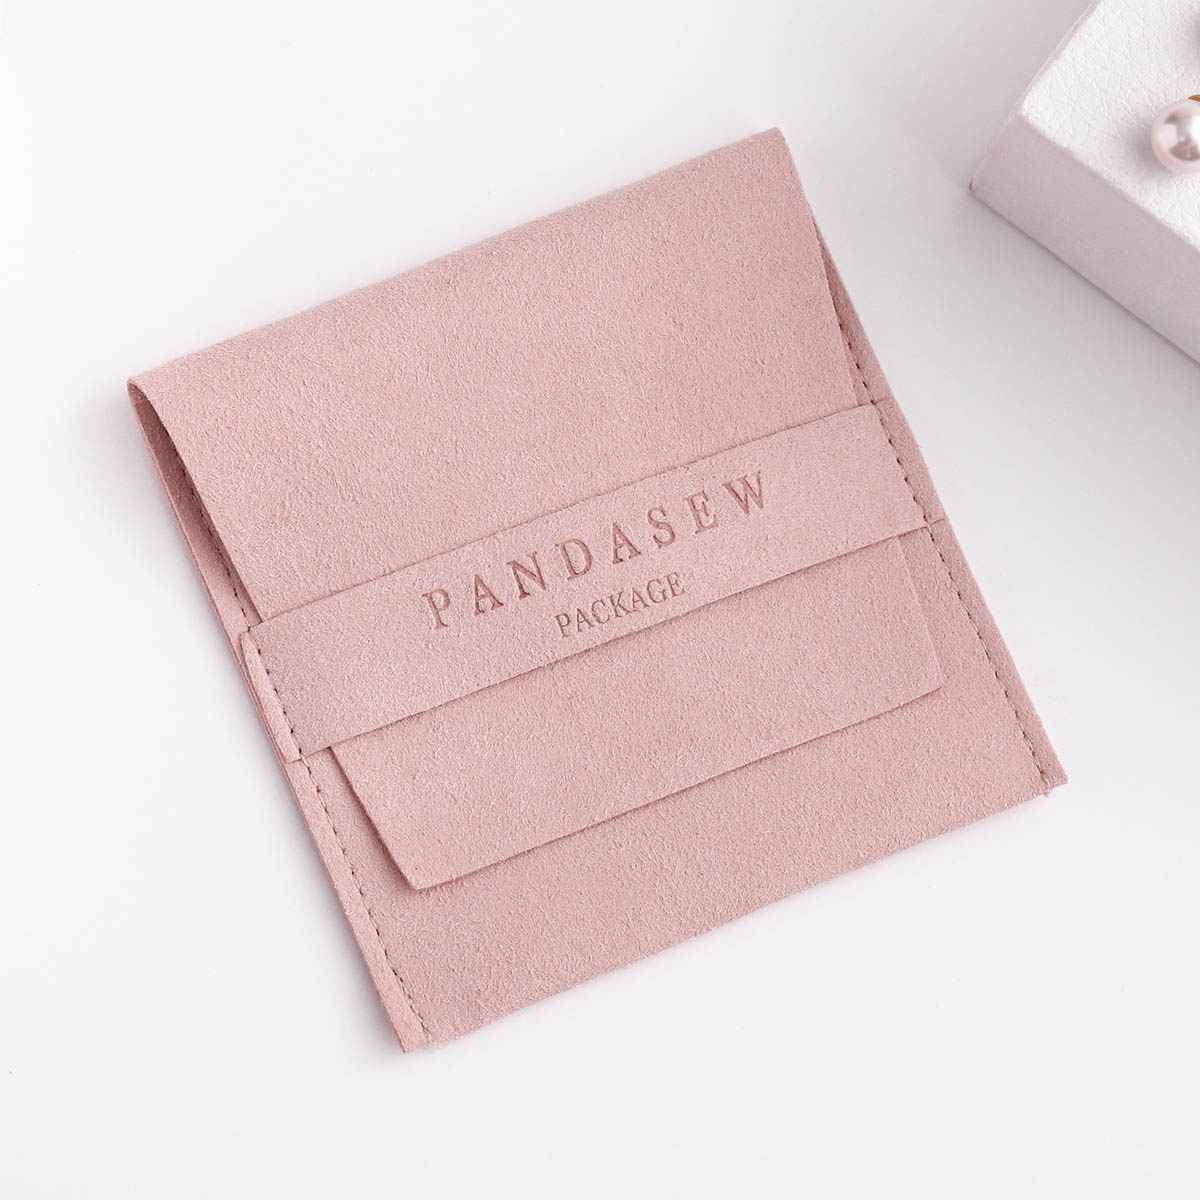 PandaSew 8x8cm Luxury Microfiber Jewelry Pouch for Fashion Earrings Necklaces Packaging Custom Logo, Customized color